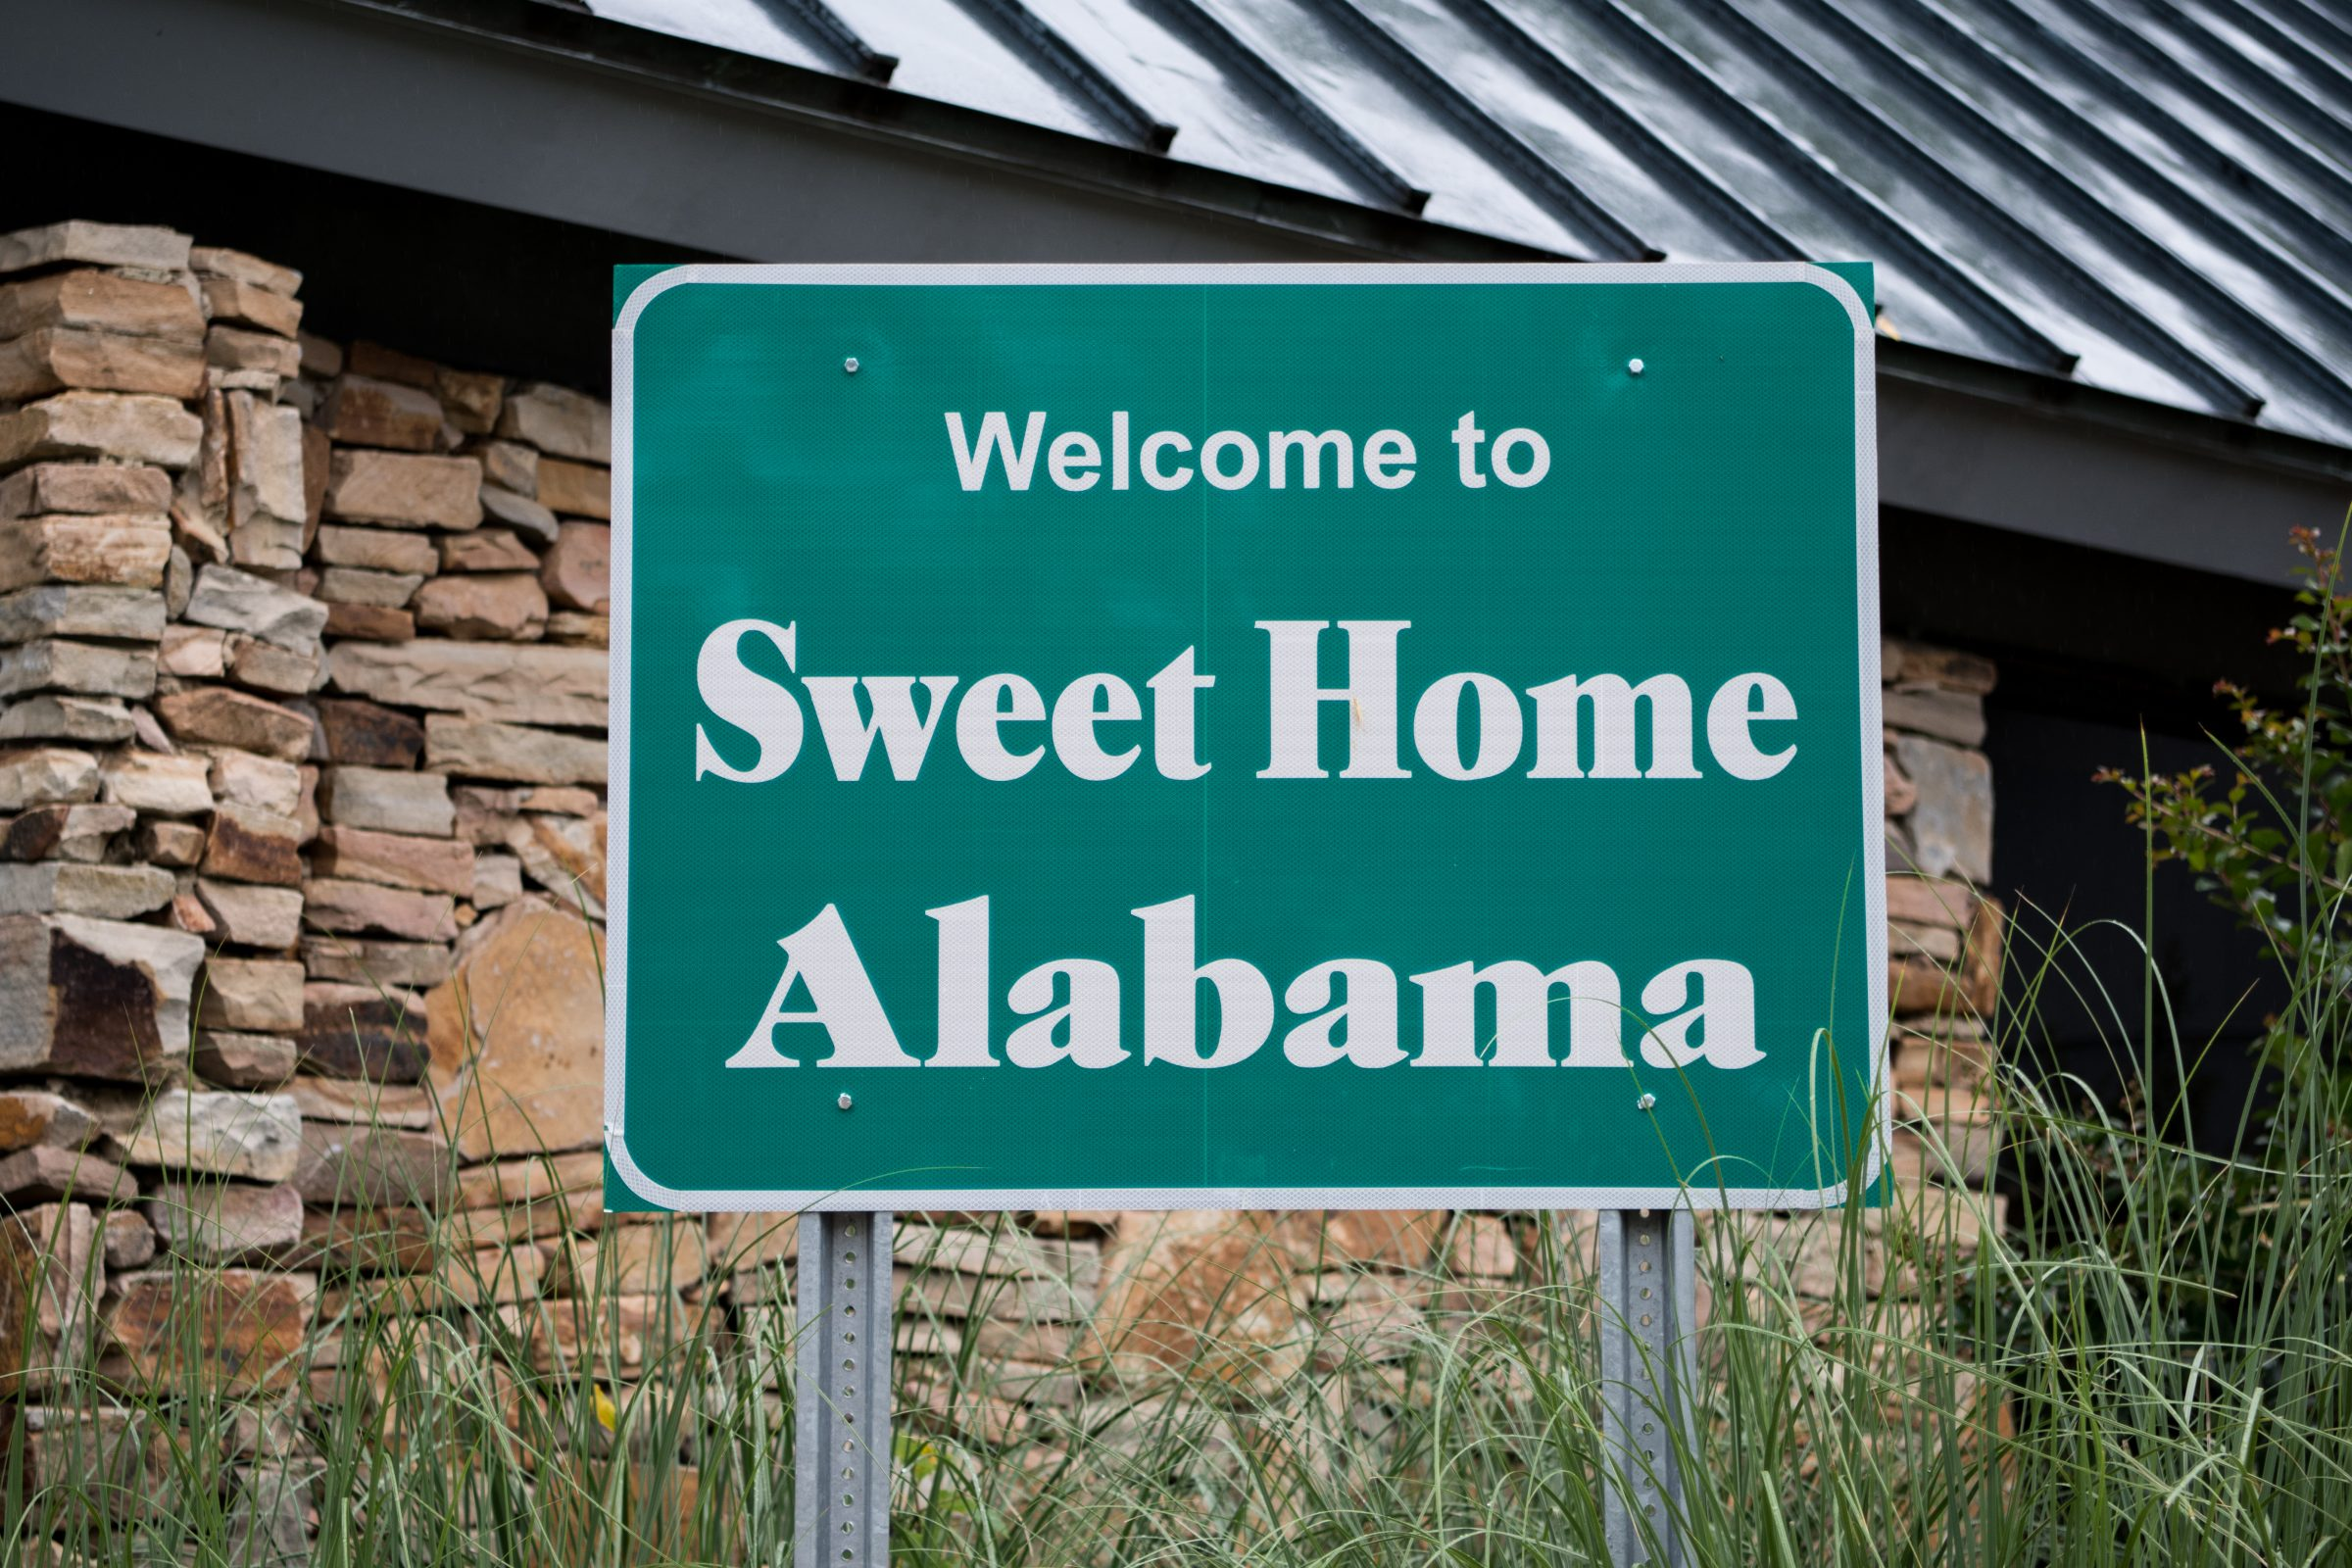 Will Alabama Live Down To Its Worst Stereotype